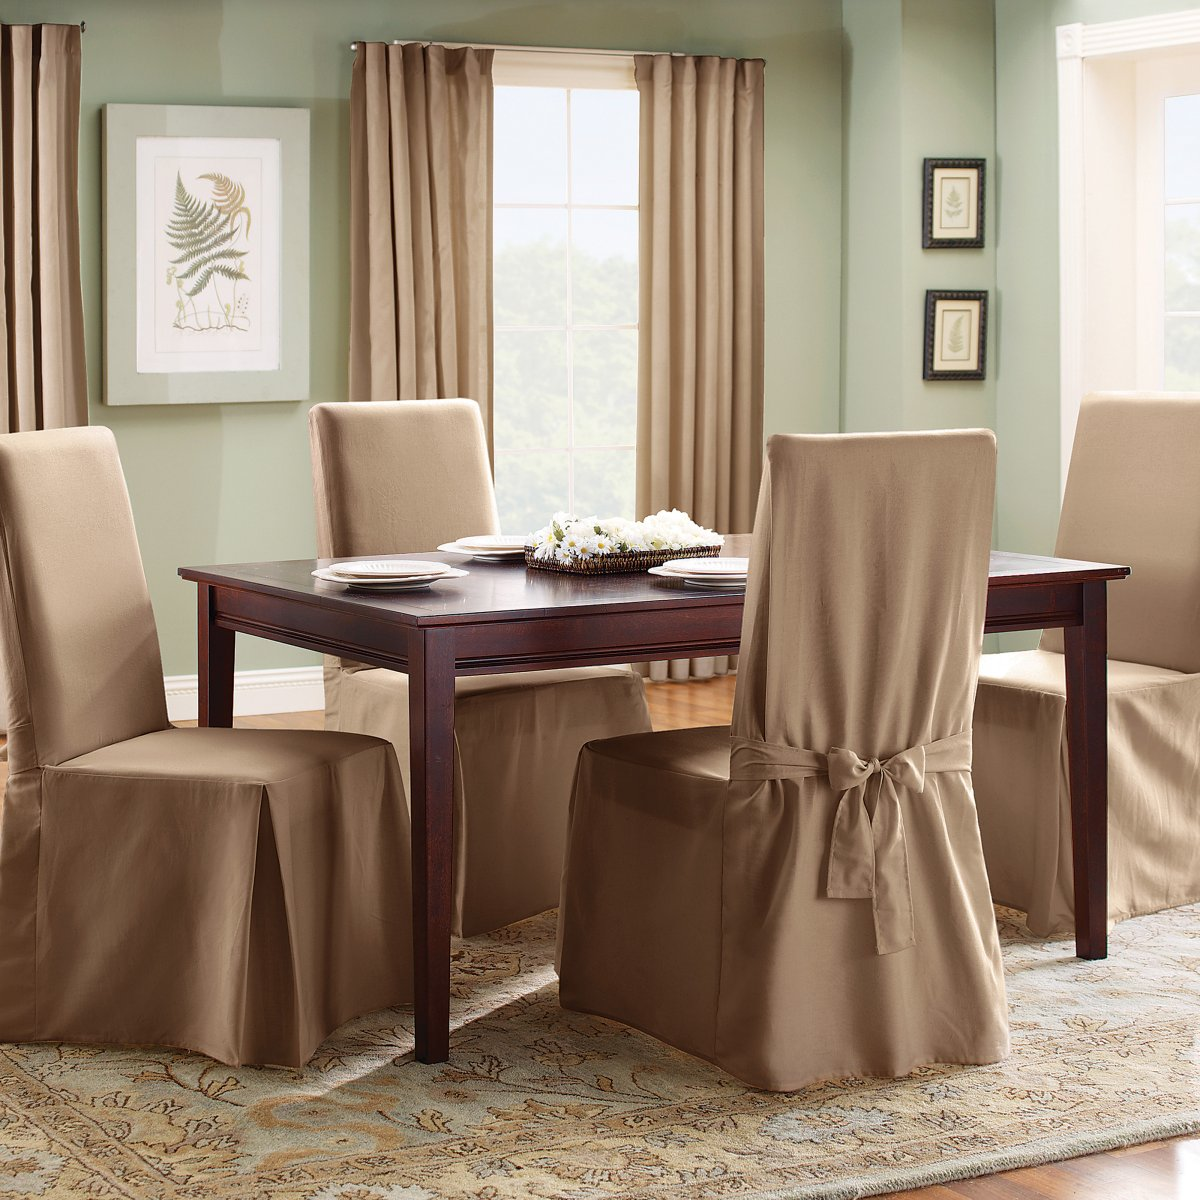 Dining Chair Slipcovers Dining Room (View 3 of 10)